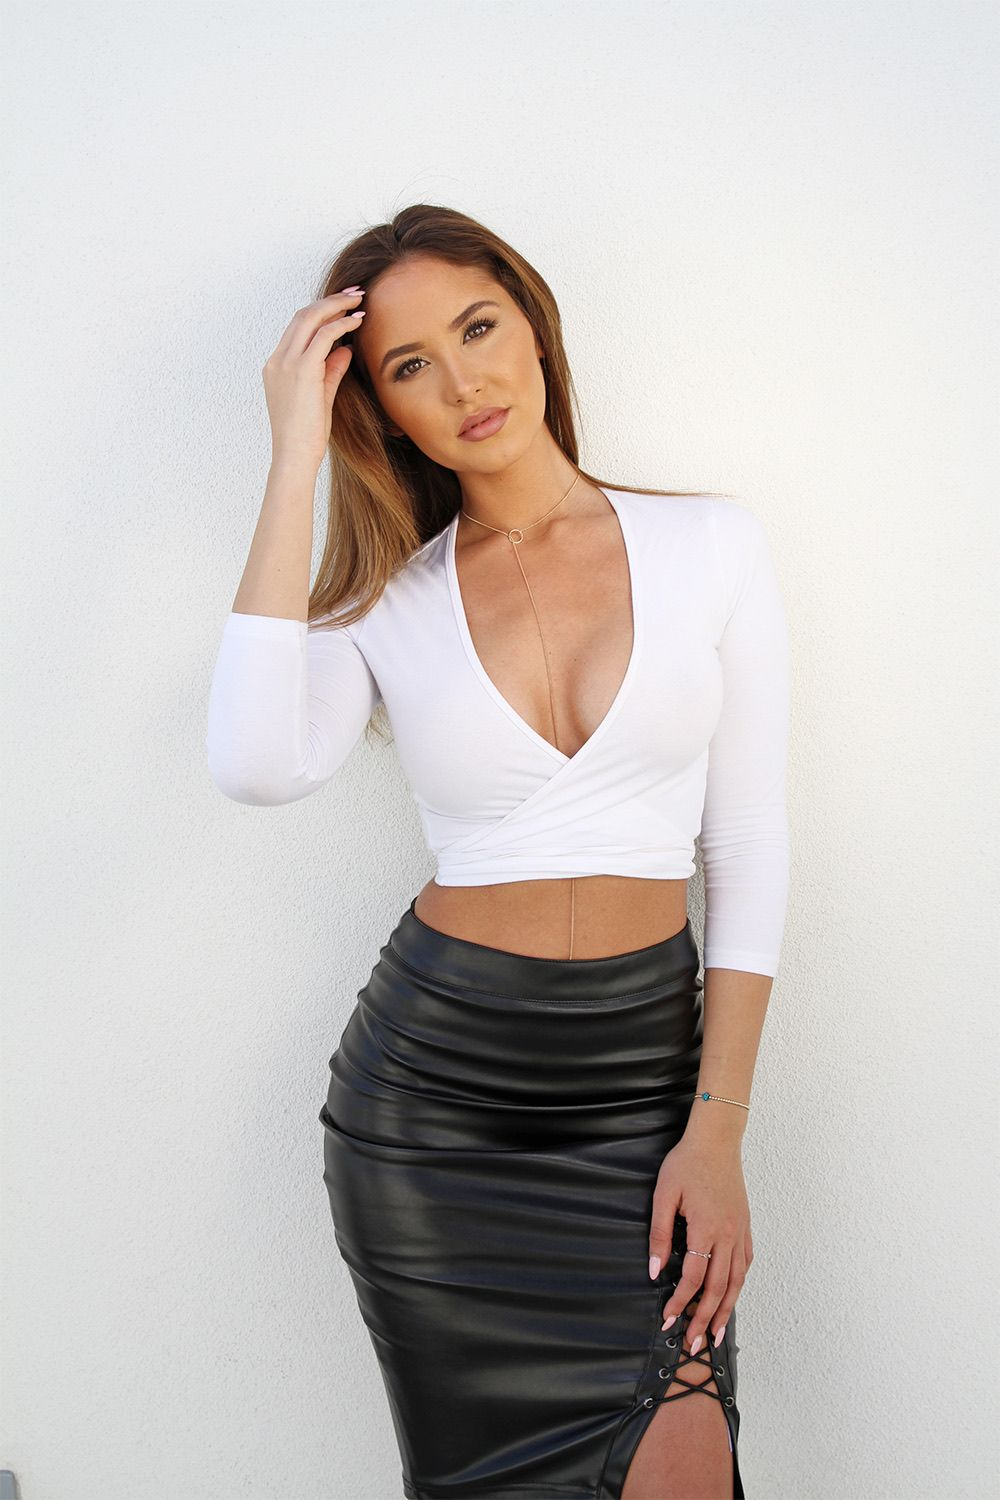 729570aa36c1 Catherine Paiz wearing a leather pencil skirt with a white crop top long  sleeve